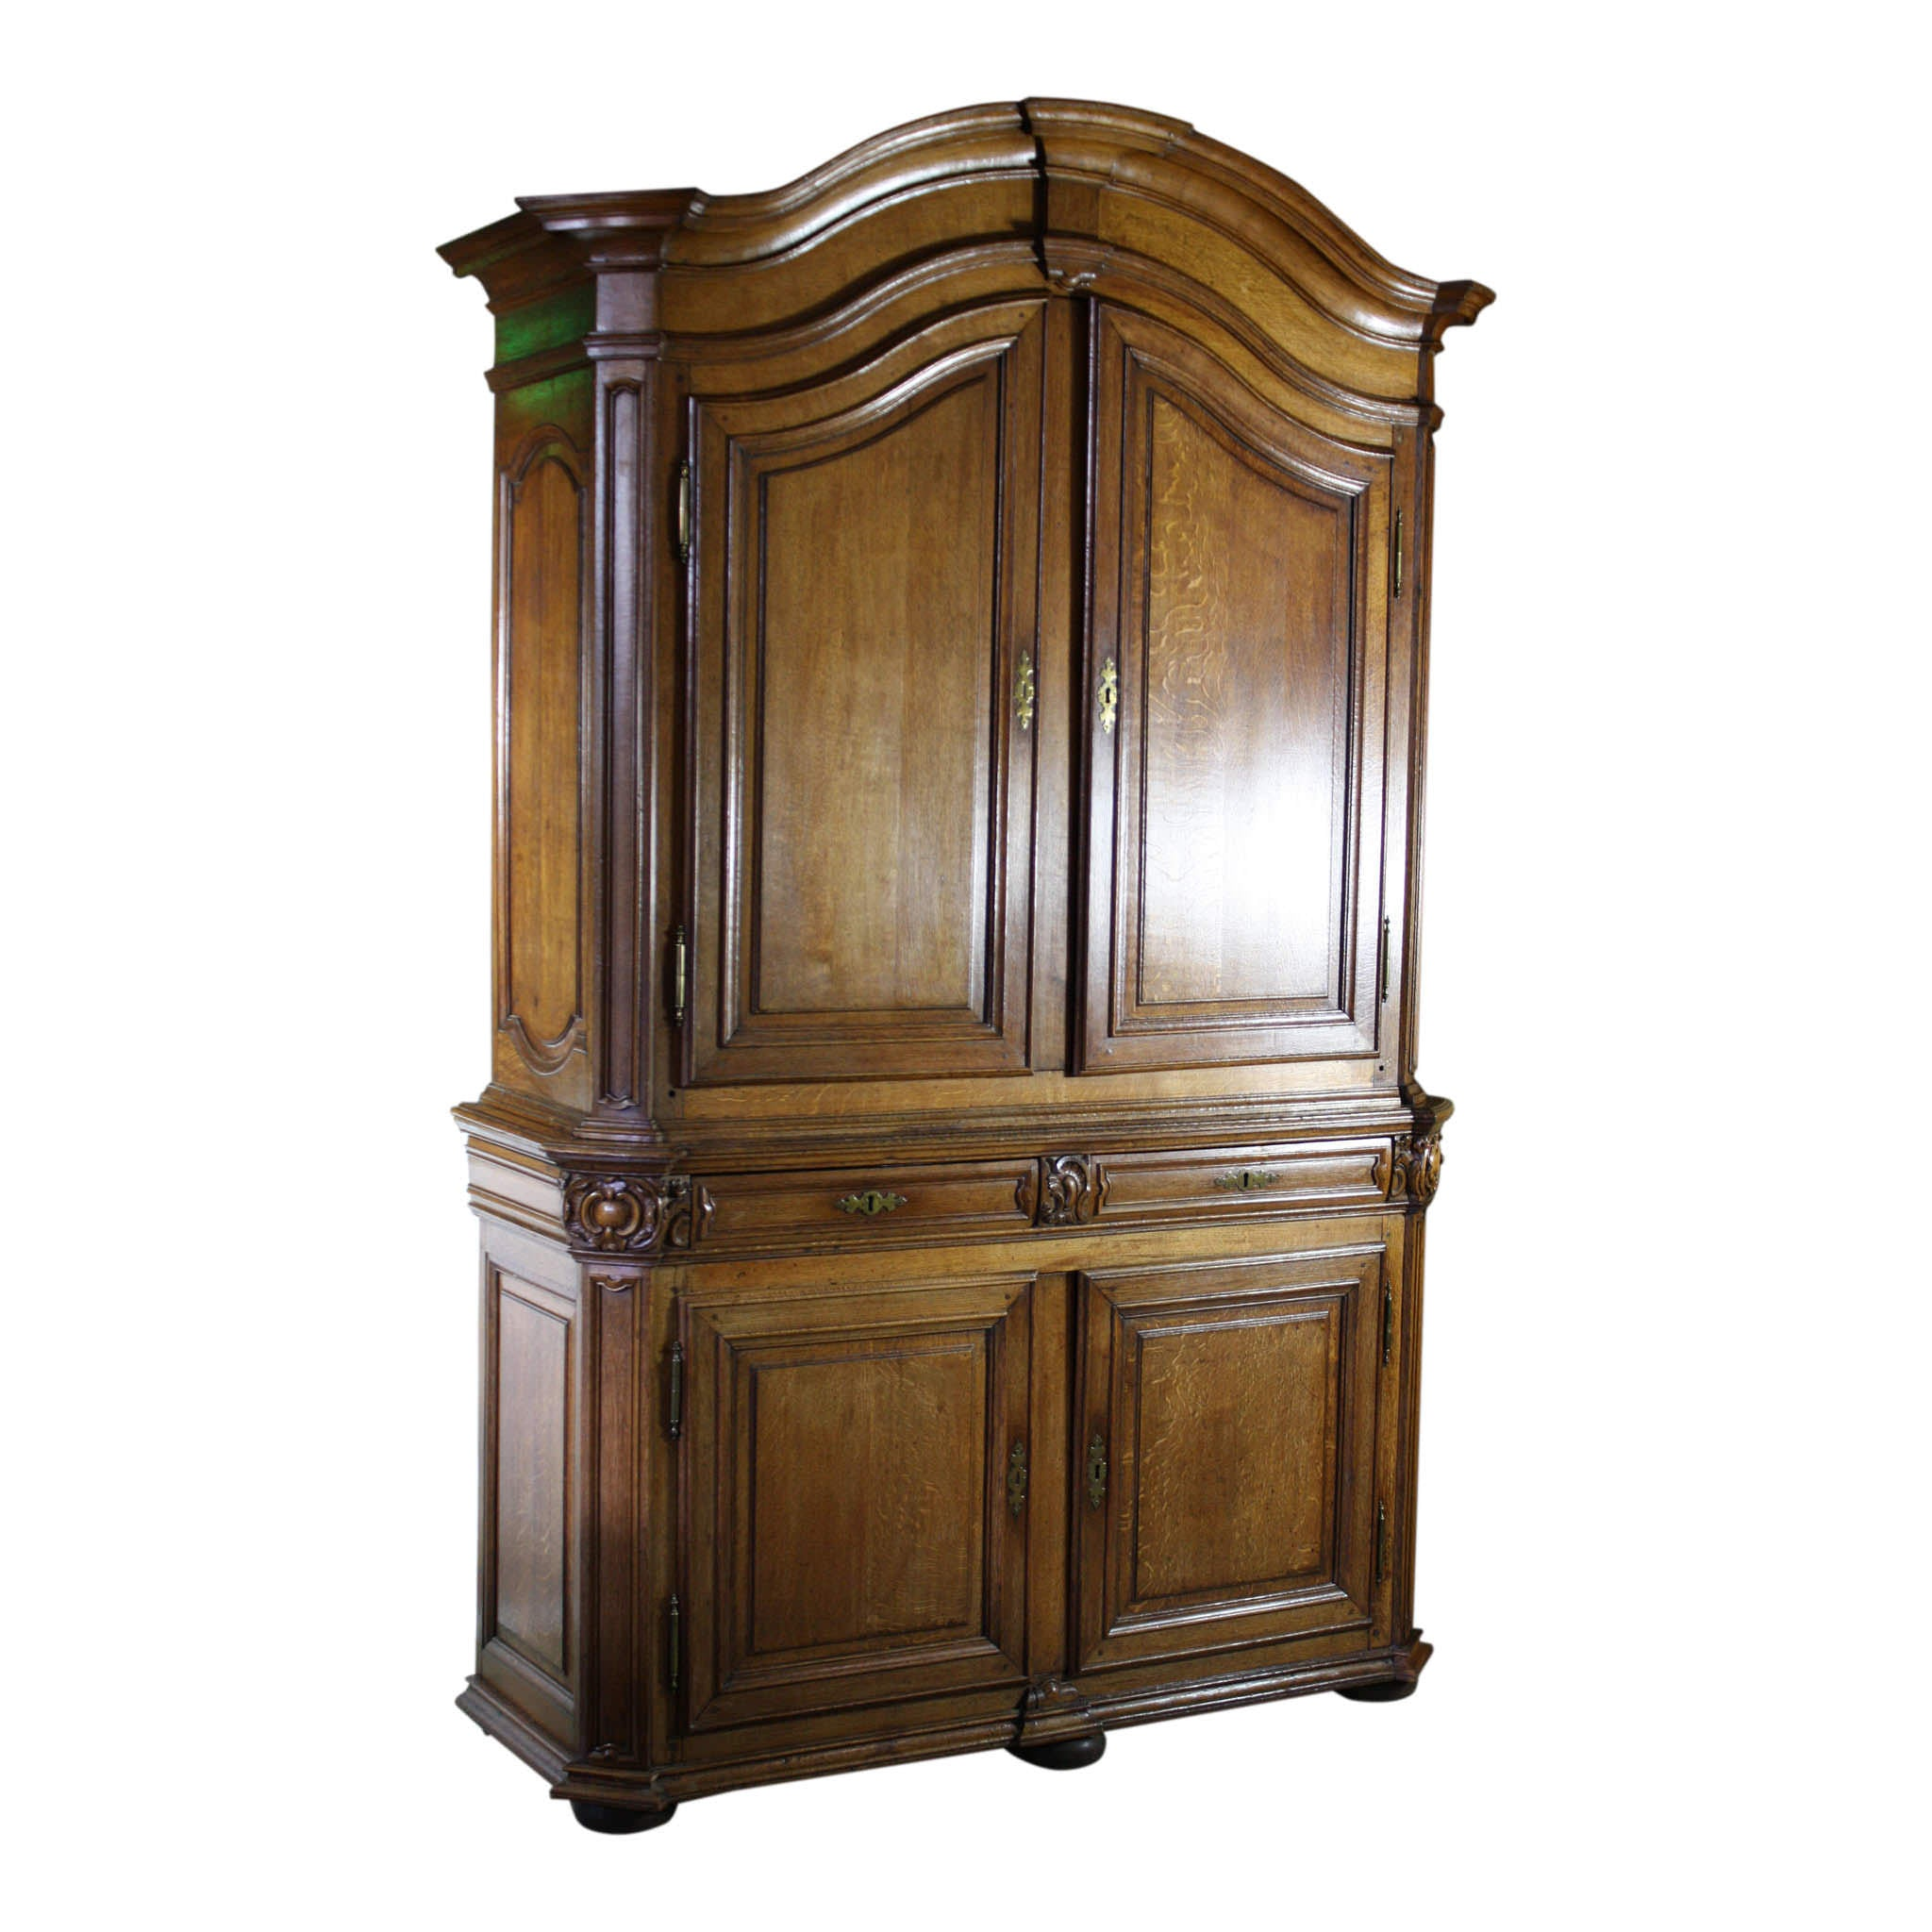 French Oak Deux Corps Cabinet (1stdibs)